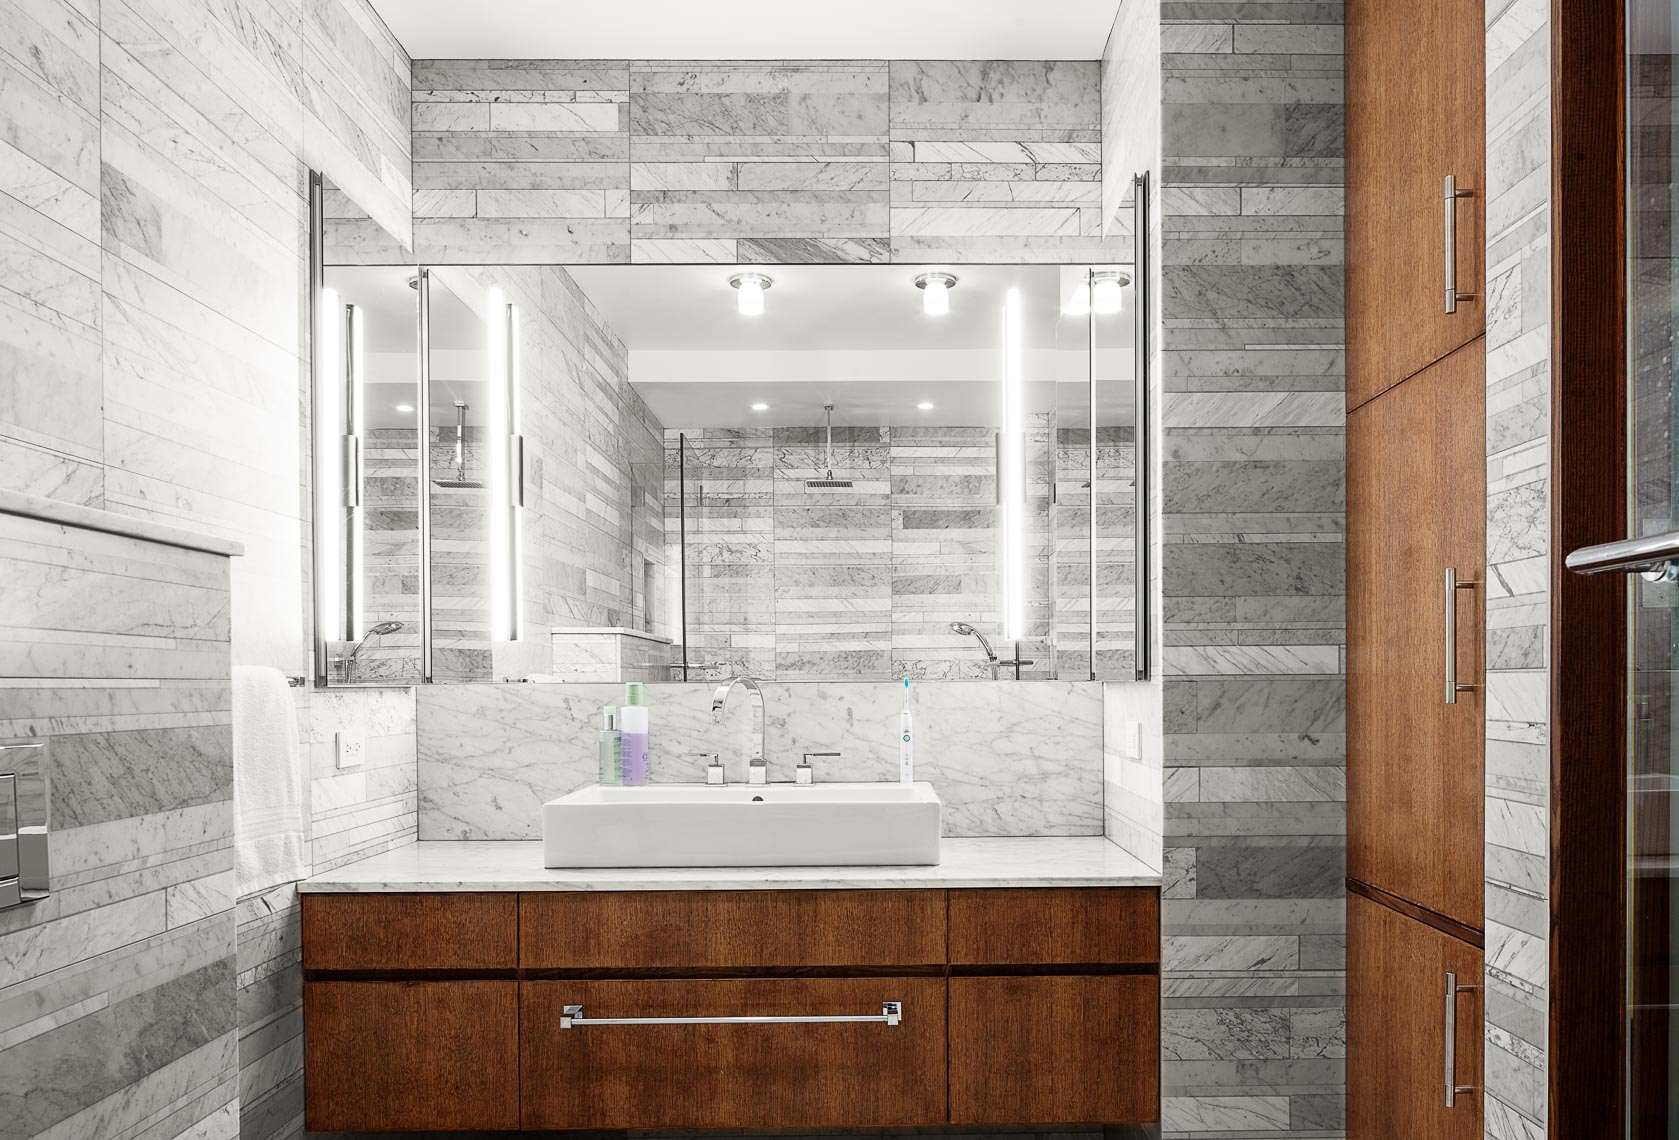 A marble tiled bathroom vanity inside a luxury apartment